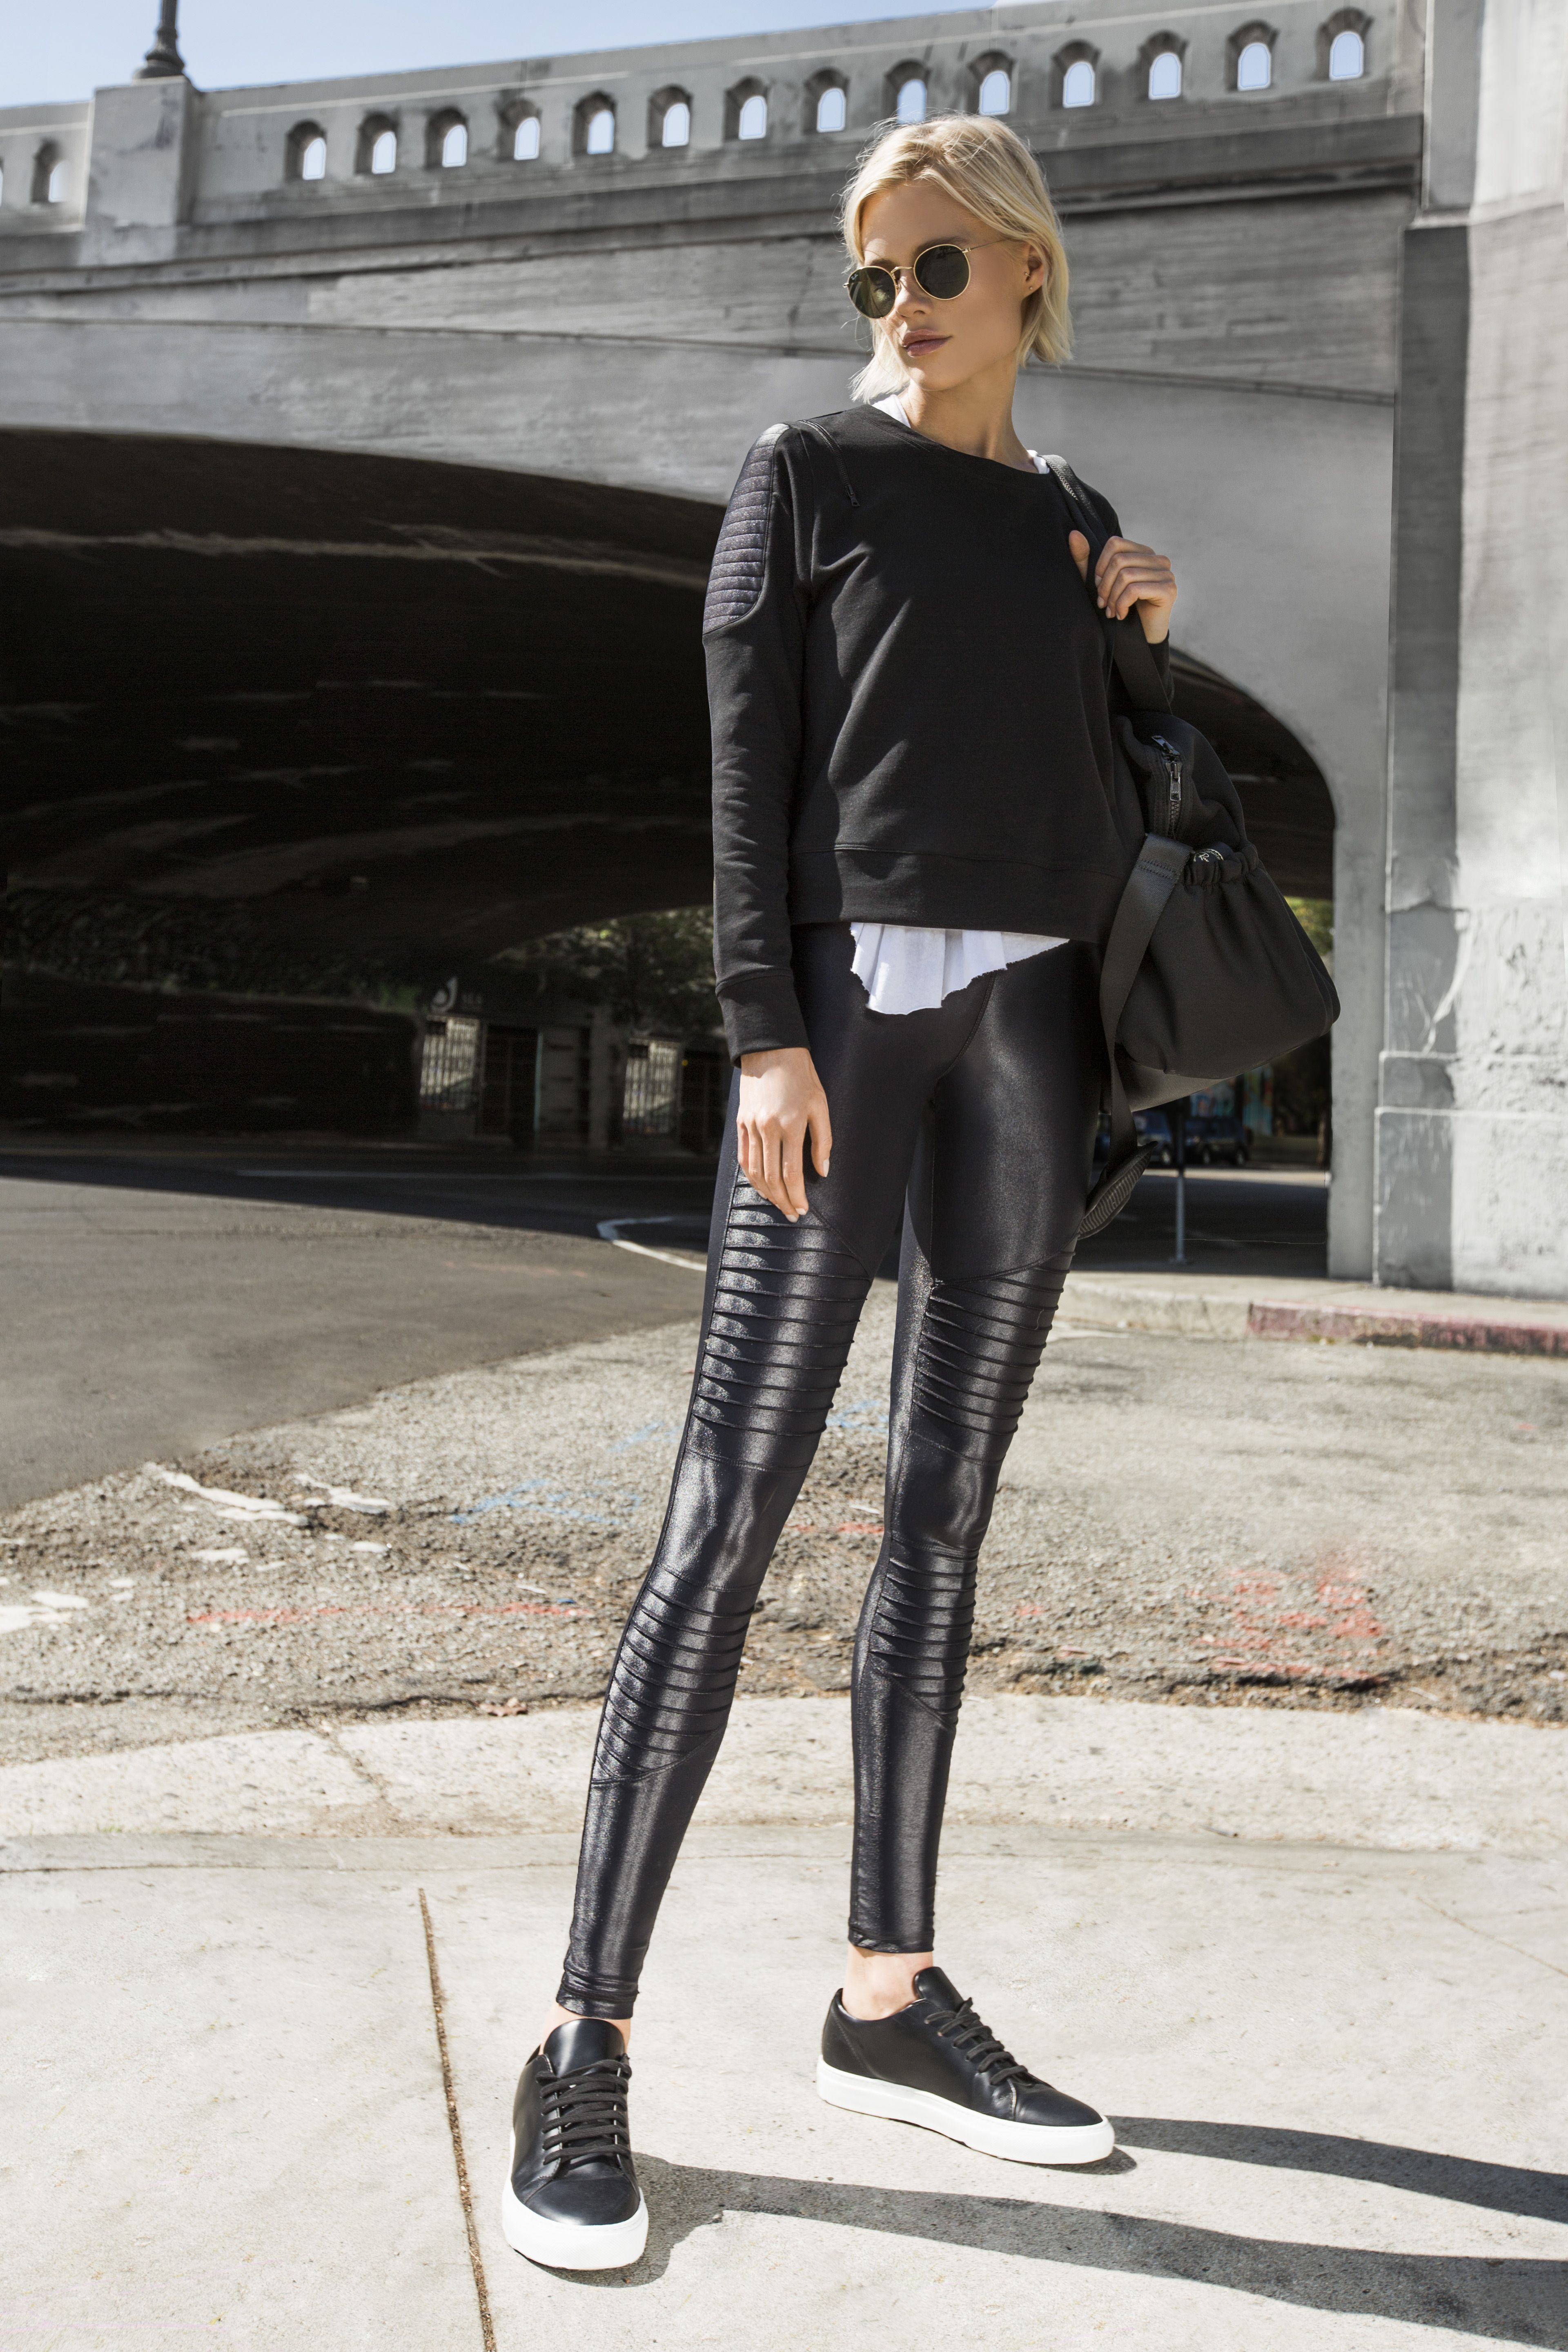 98268516f94 Carbon38 Moto Collection   C38   Moto Collection in 2019   Leggings ...